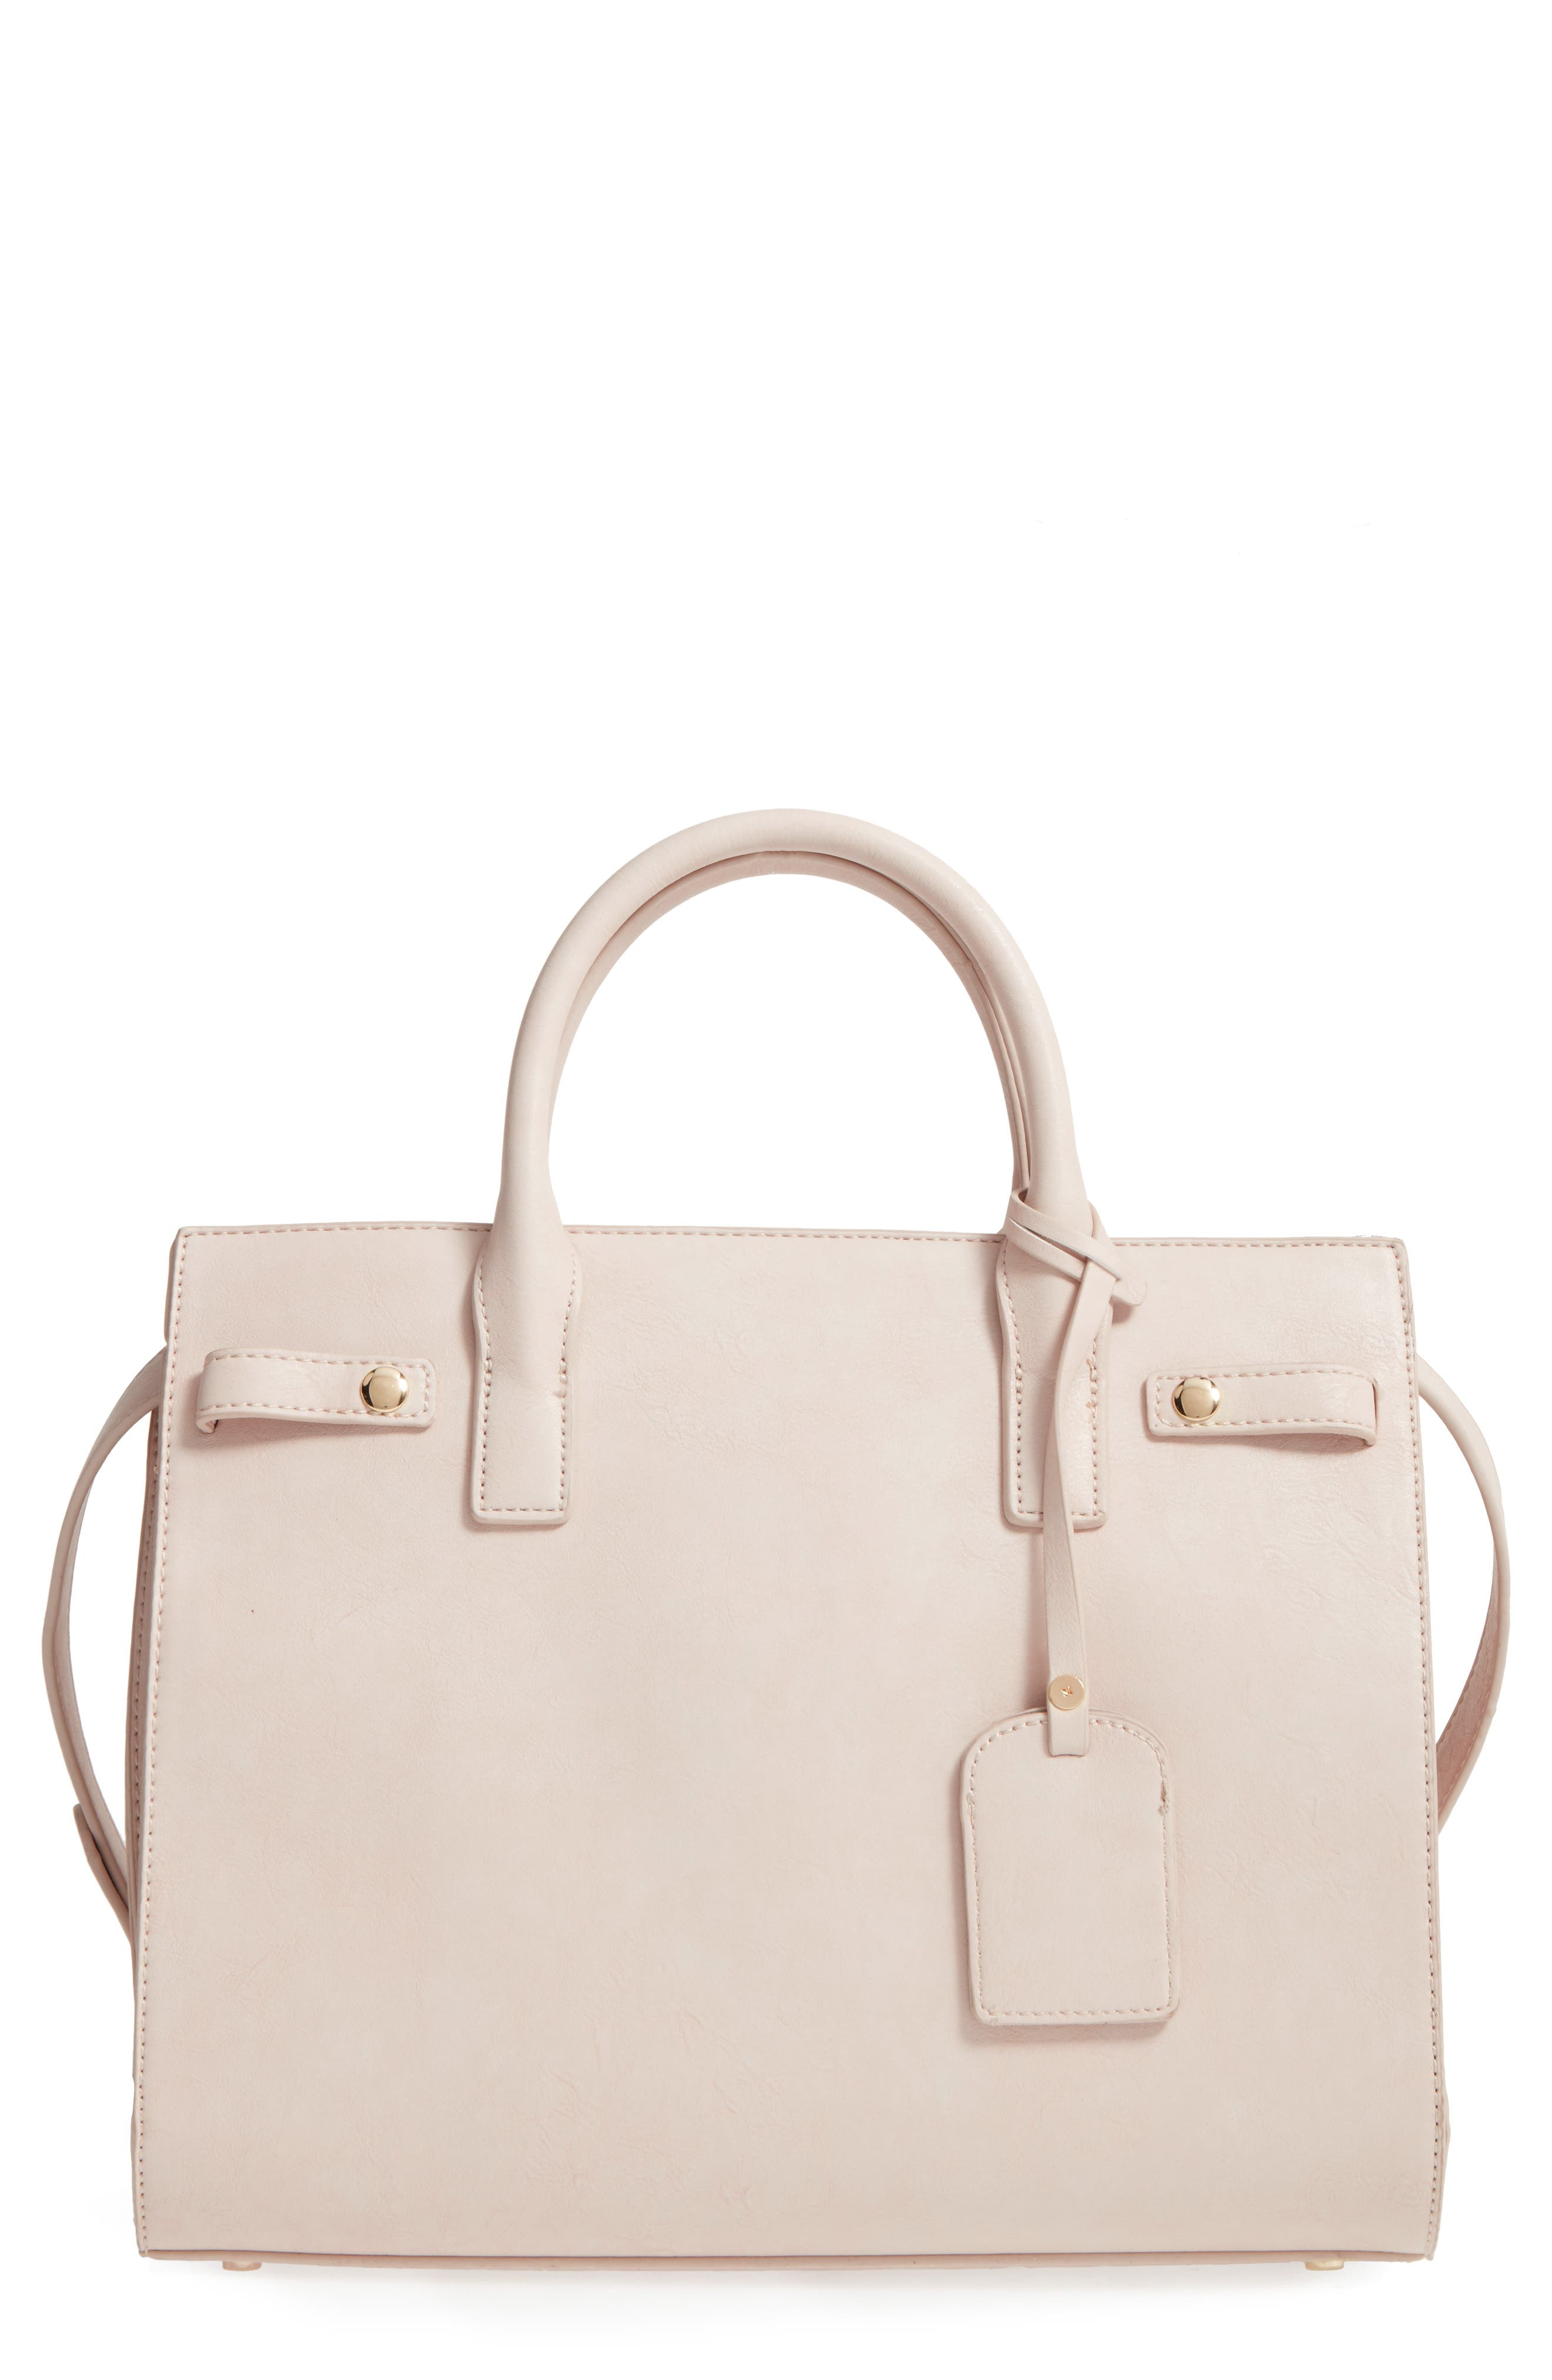 Main Image - Sole Society Athenia Faux Leather Satchel